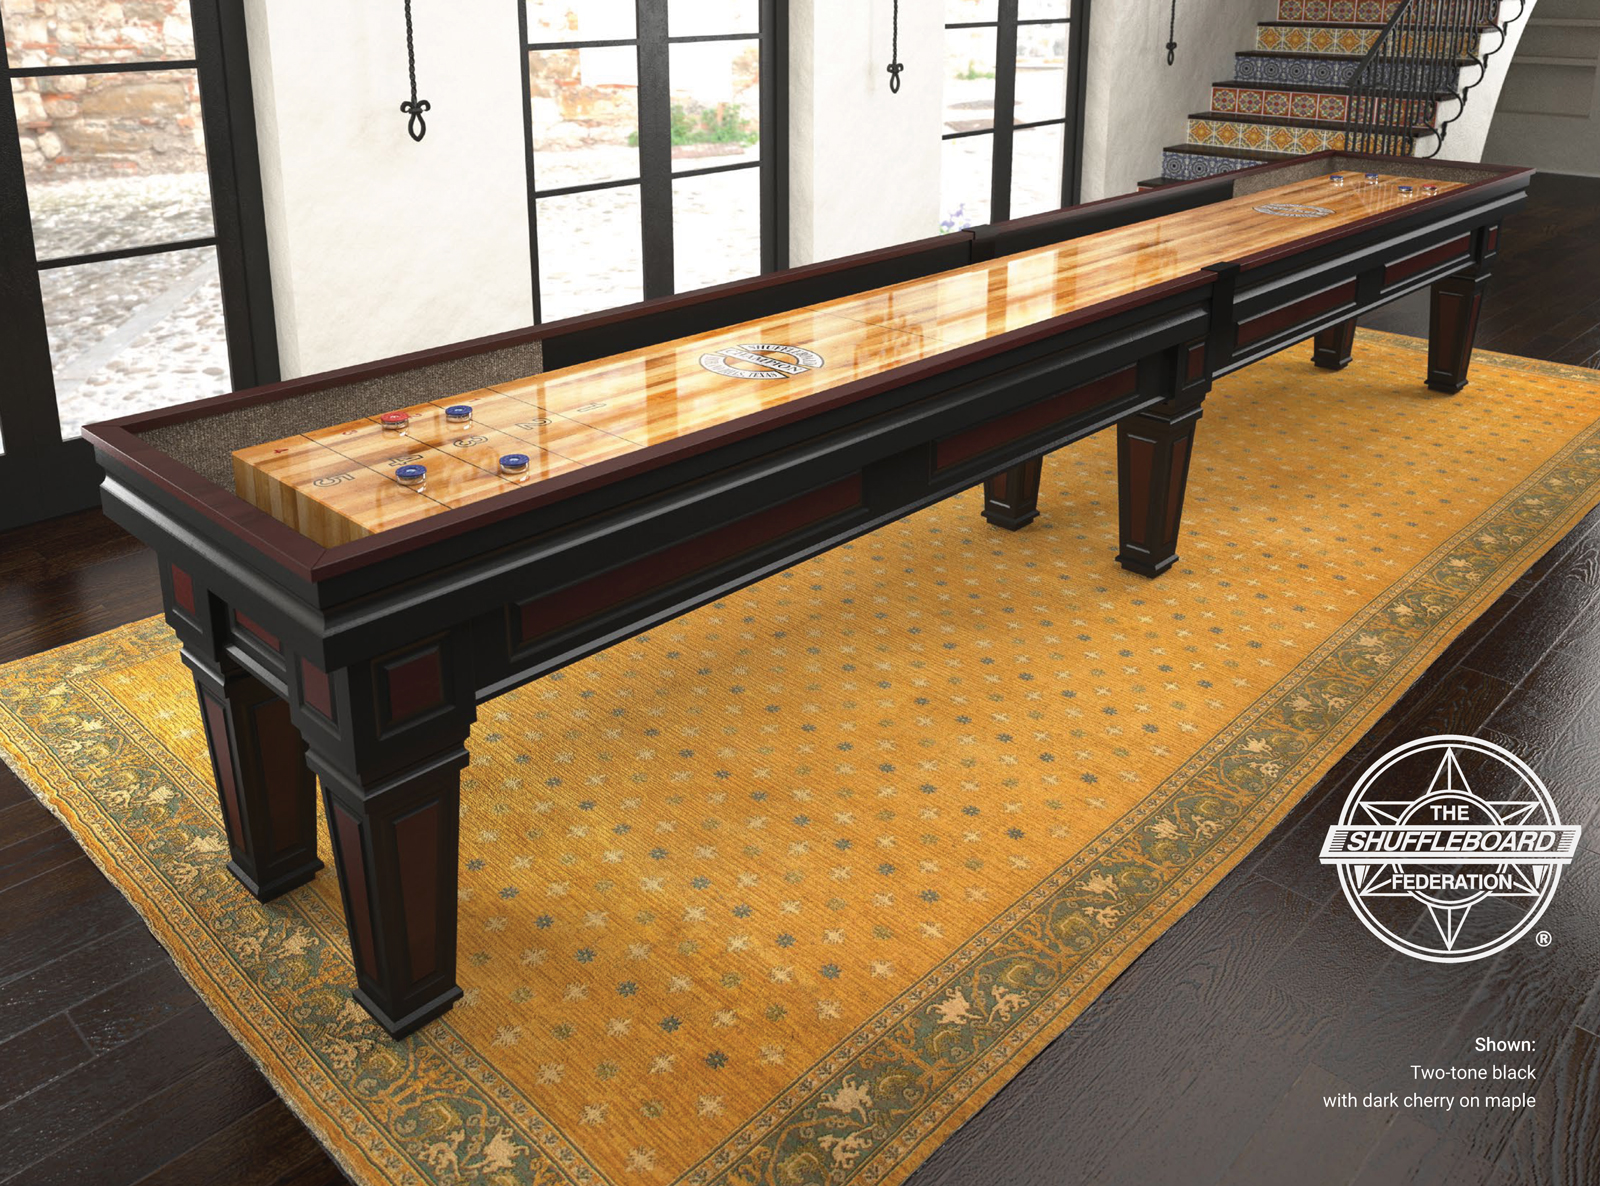 Champion Worthington Shuffleboard Table - Standard shuffleboard table